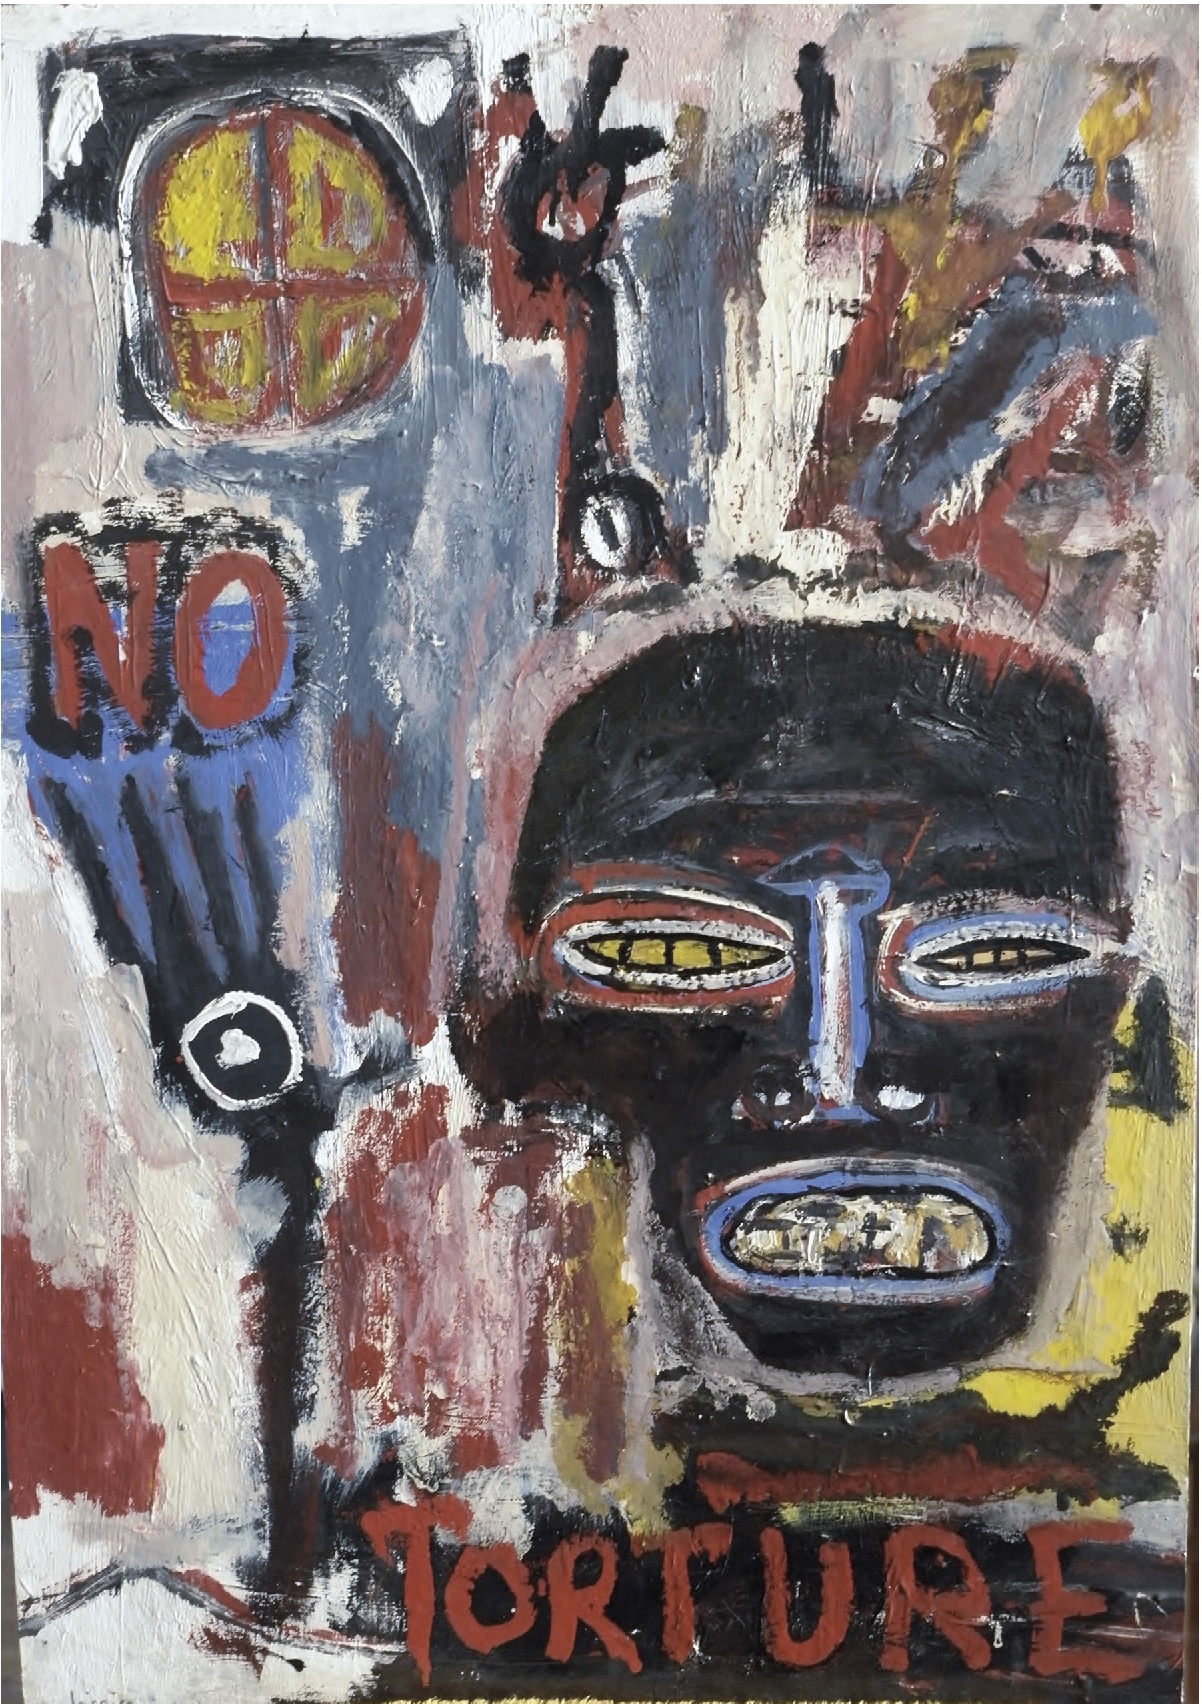 Lot 42 - Liccia Dominique (1953) No torture - Mixed media - Signed on the lower left - 86 x 60 [...]